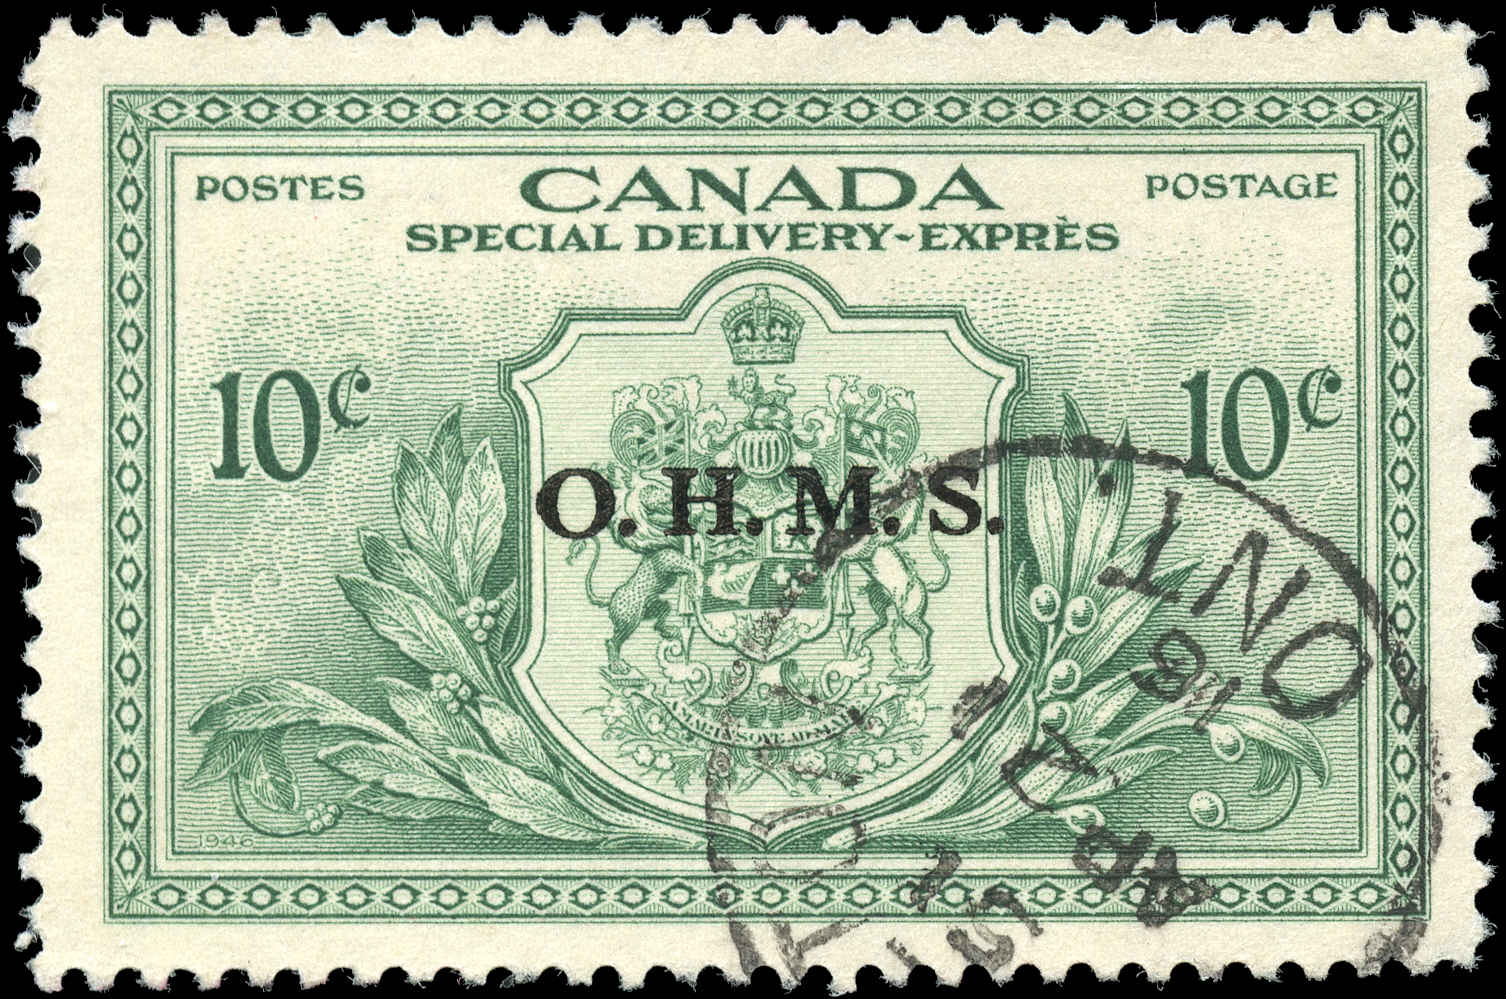 Canada #EO1, Overprint Stamp, VF, Used